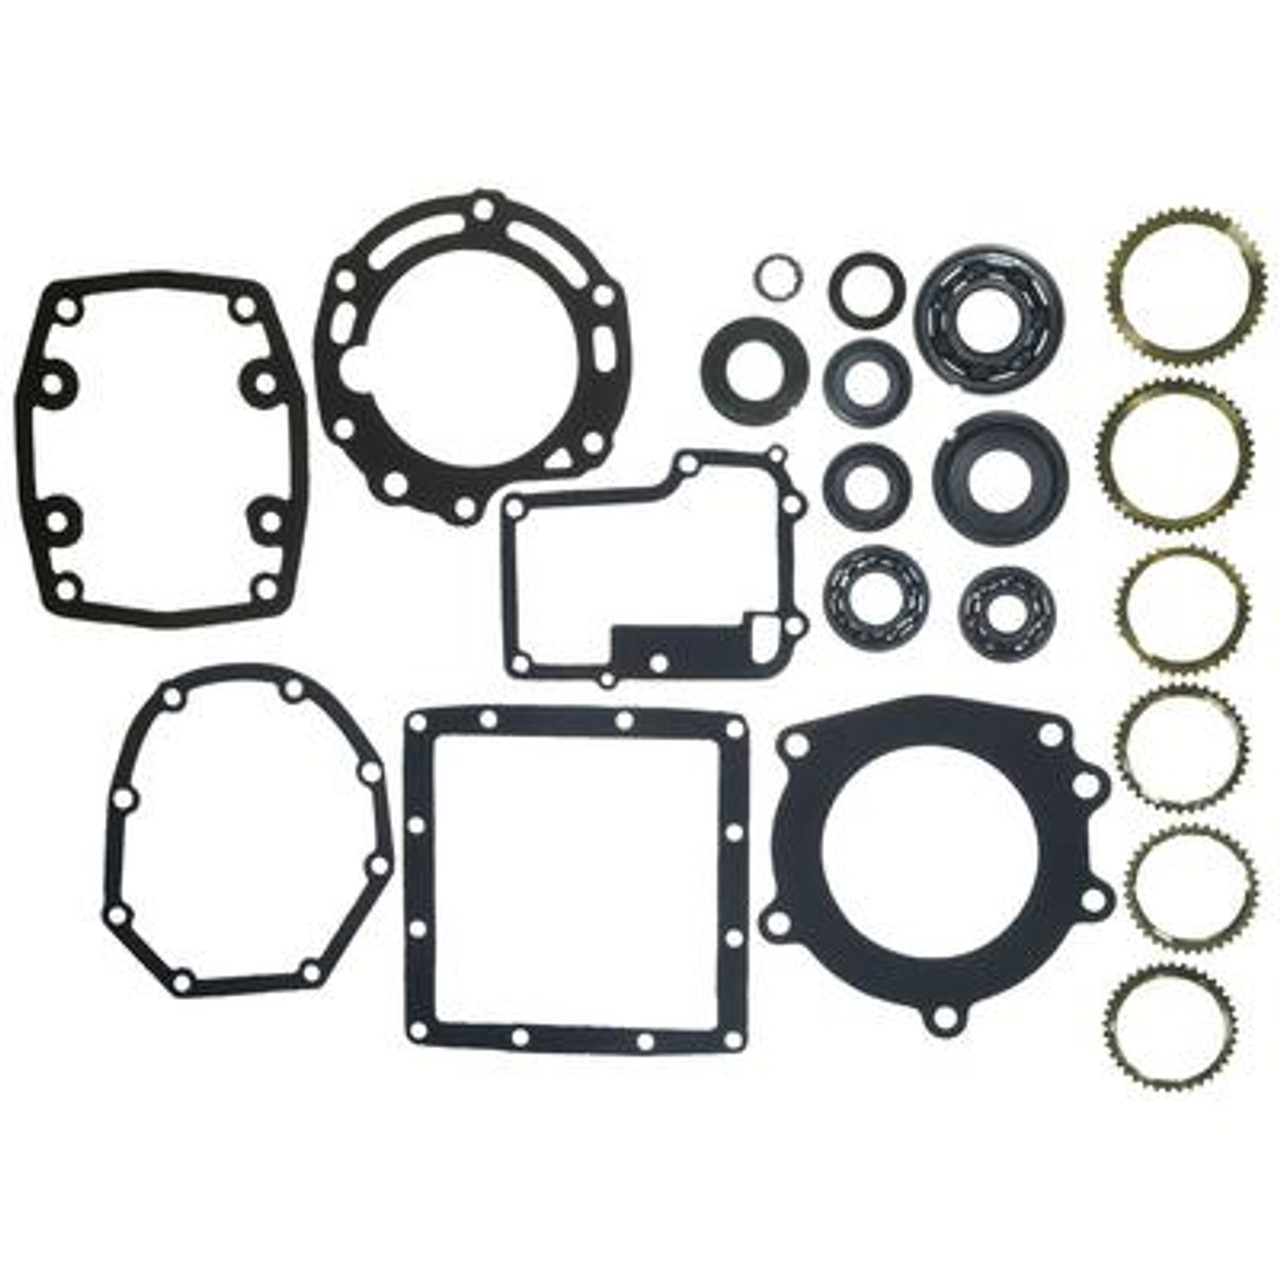 FM132 TRANSMISSION REBUILD KIT WITH SYNCHRO RINGS FITS